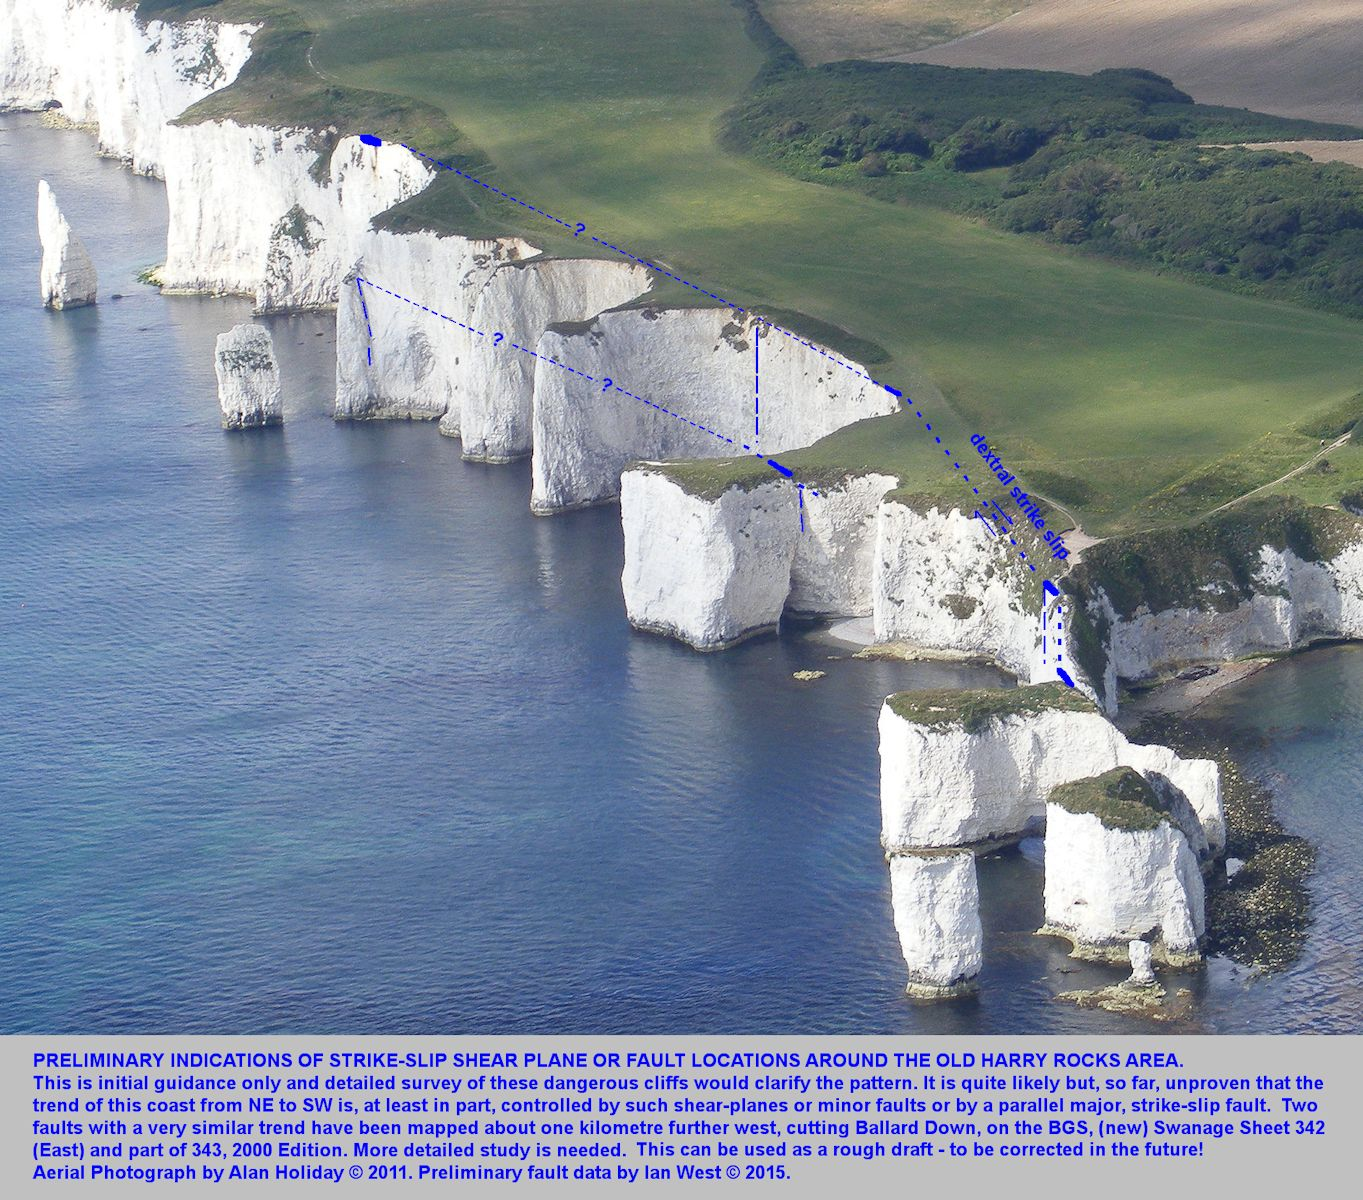 An aerial view showing, some preliminary indications of the locations of strike-slip faults in the vicinity of Old Harry Rocks, Studland, Dorset